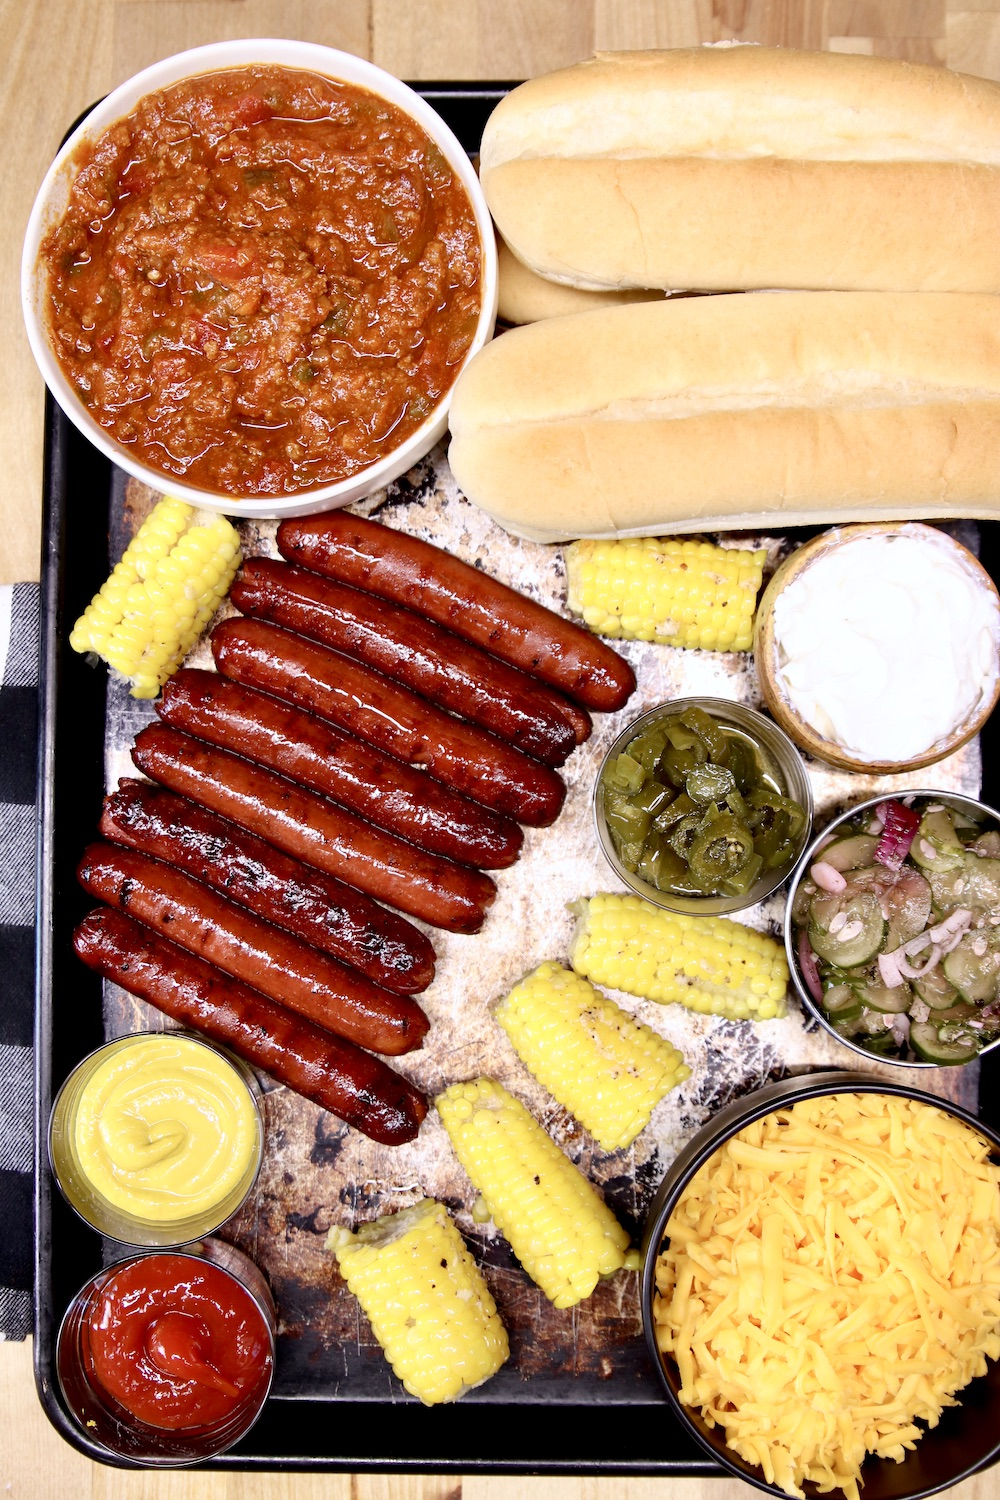 Baking sheet with hot dog chili, buns, grilled hot dogs, corn on the cob, shredded cheese, condiments